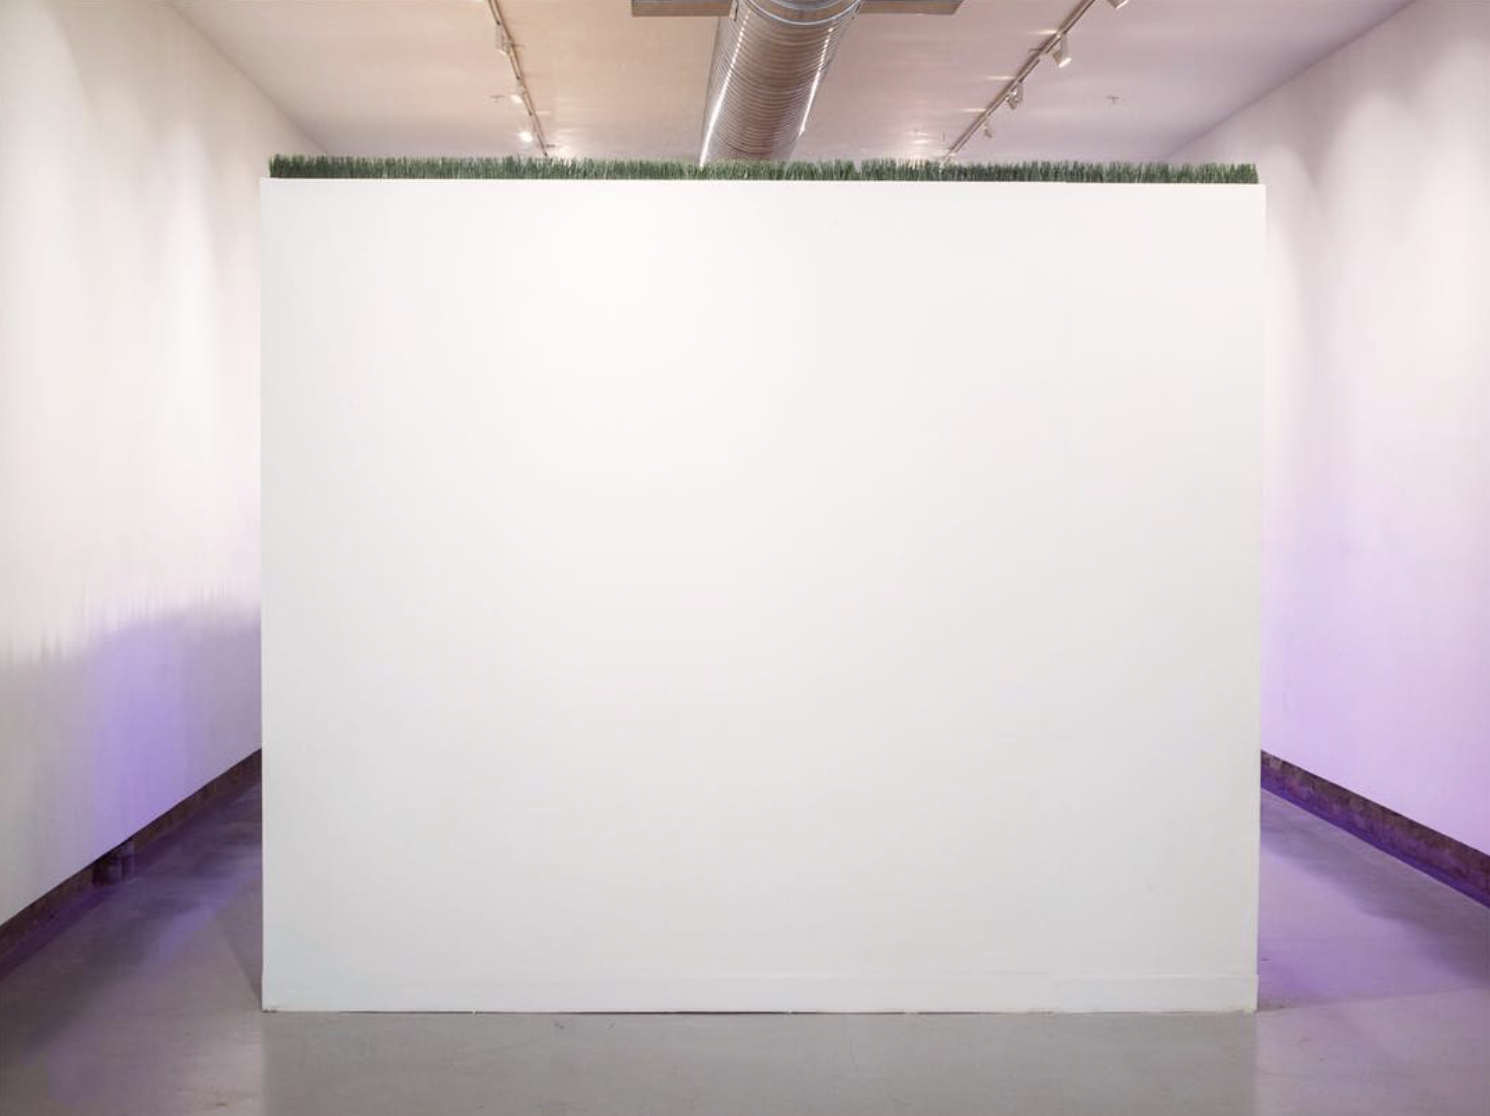 white cube. Come tomorrow and see this space come alive with wheatgrass and punk music.  #permacounterculture